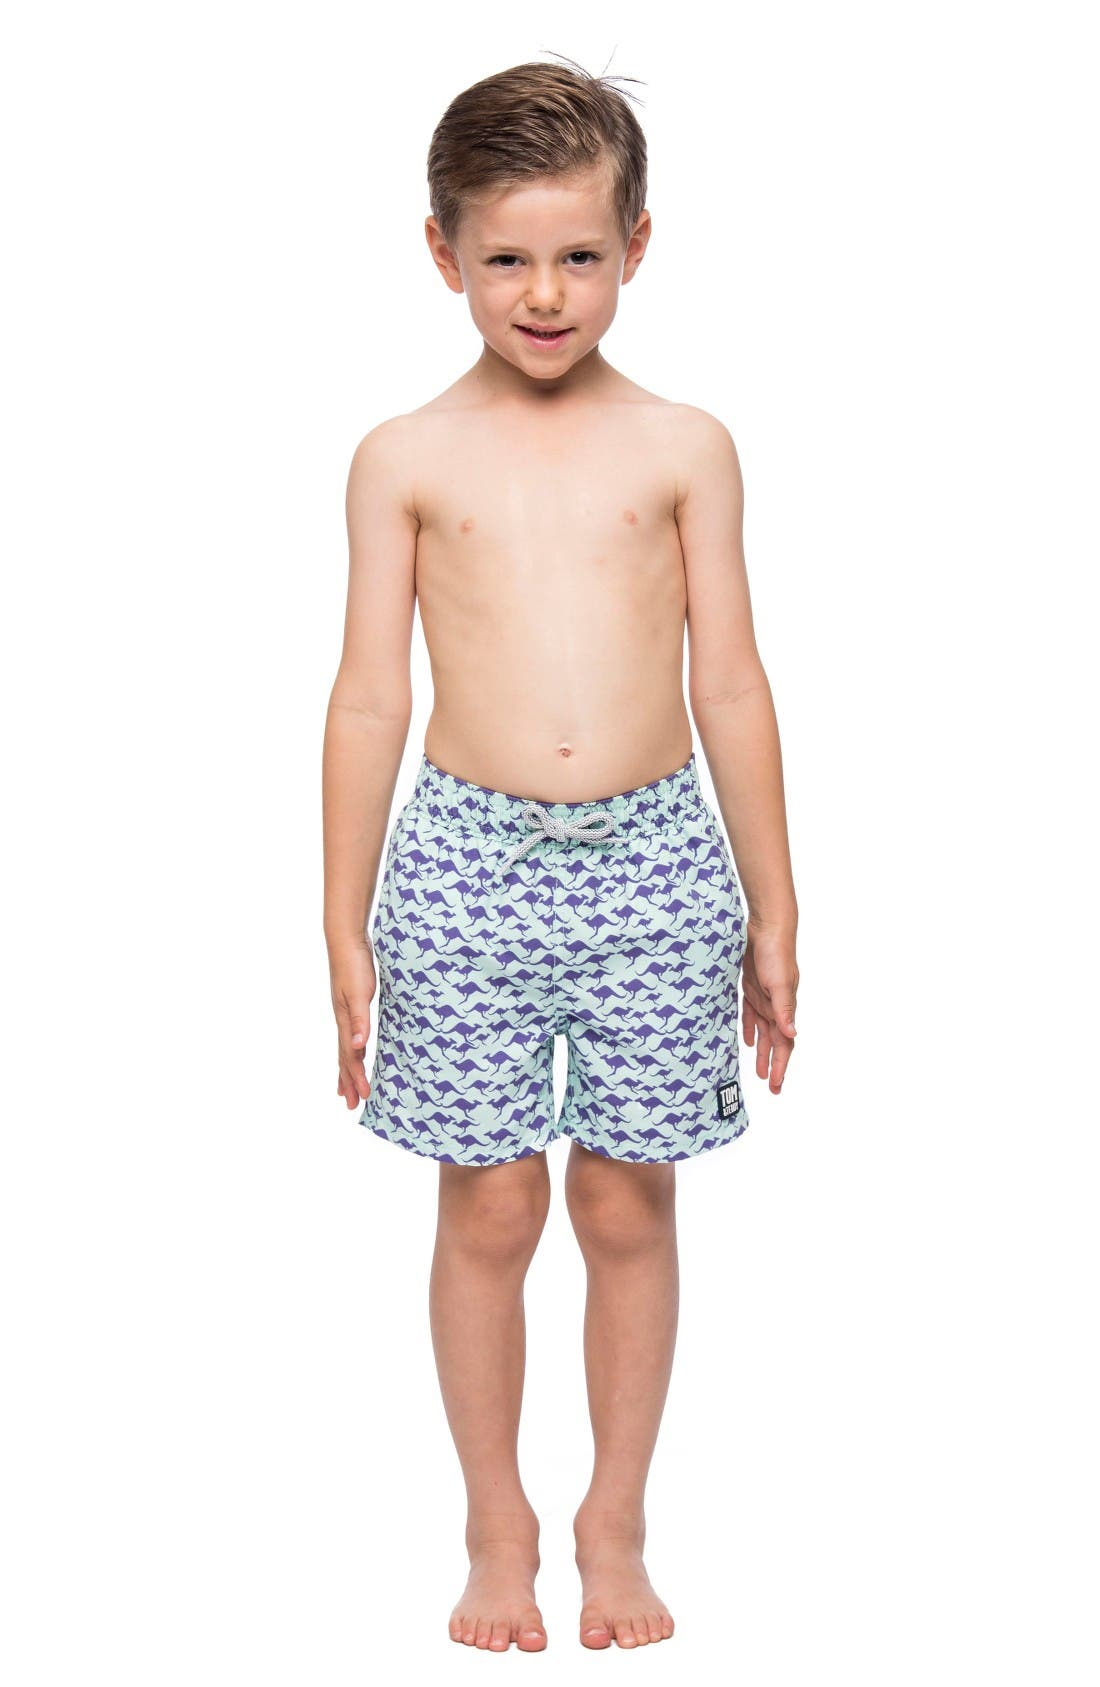 Kangaroo Swim Trunks,                             Main thumbnail 1, color,                             Violet